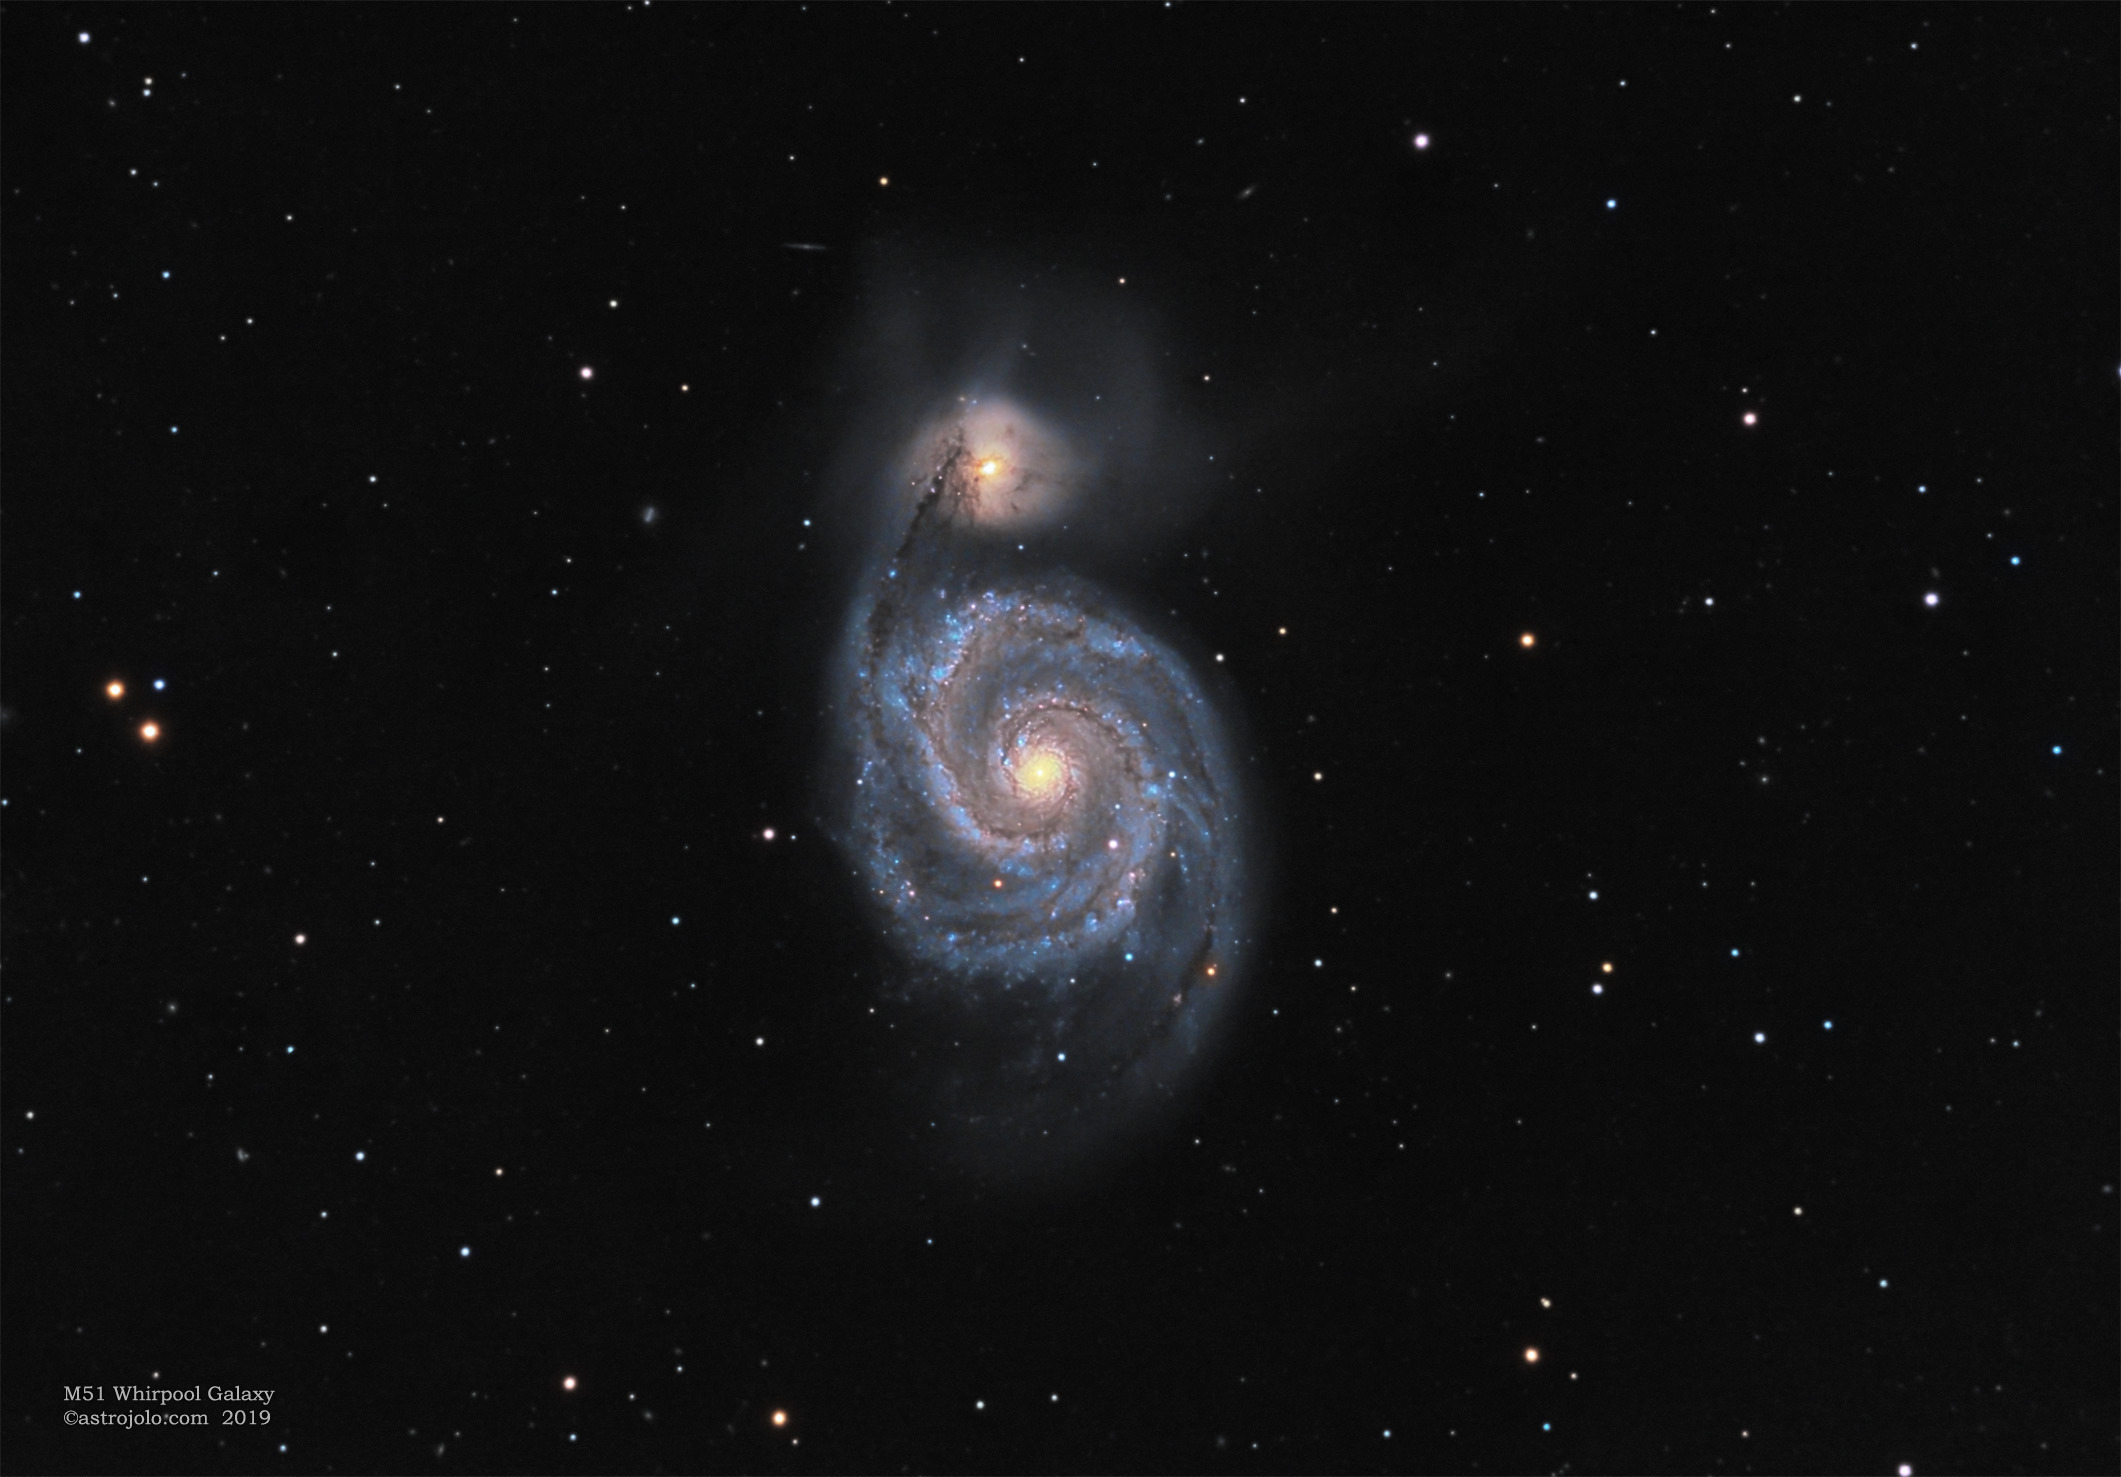 M51 Whirlpool Date: 19-21.04.2019 Location:   Nieborowice, Poland Telescope:  Meade ACF 10` Corrector:  AP CCDT67 Camera:     QHY163M, gain 100 Mount:      SW EQ6 Guiding:    SW 80/400 + ASI290MM Exposure:   LRGB 400:40:30:40x60 seconds Conditions: suburban sky, seeing good, transparency good